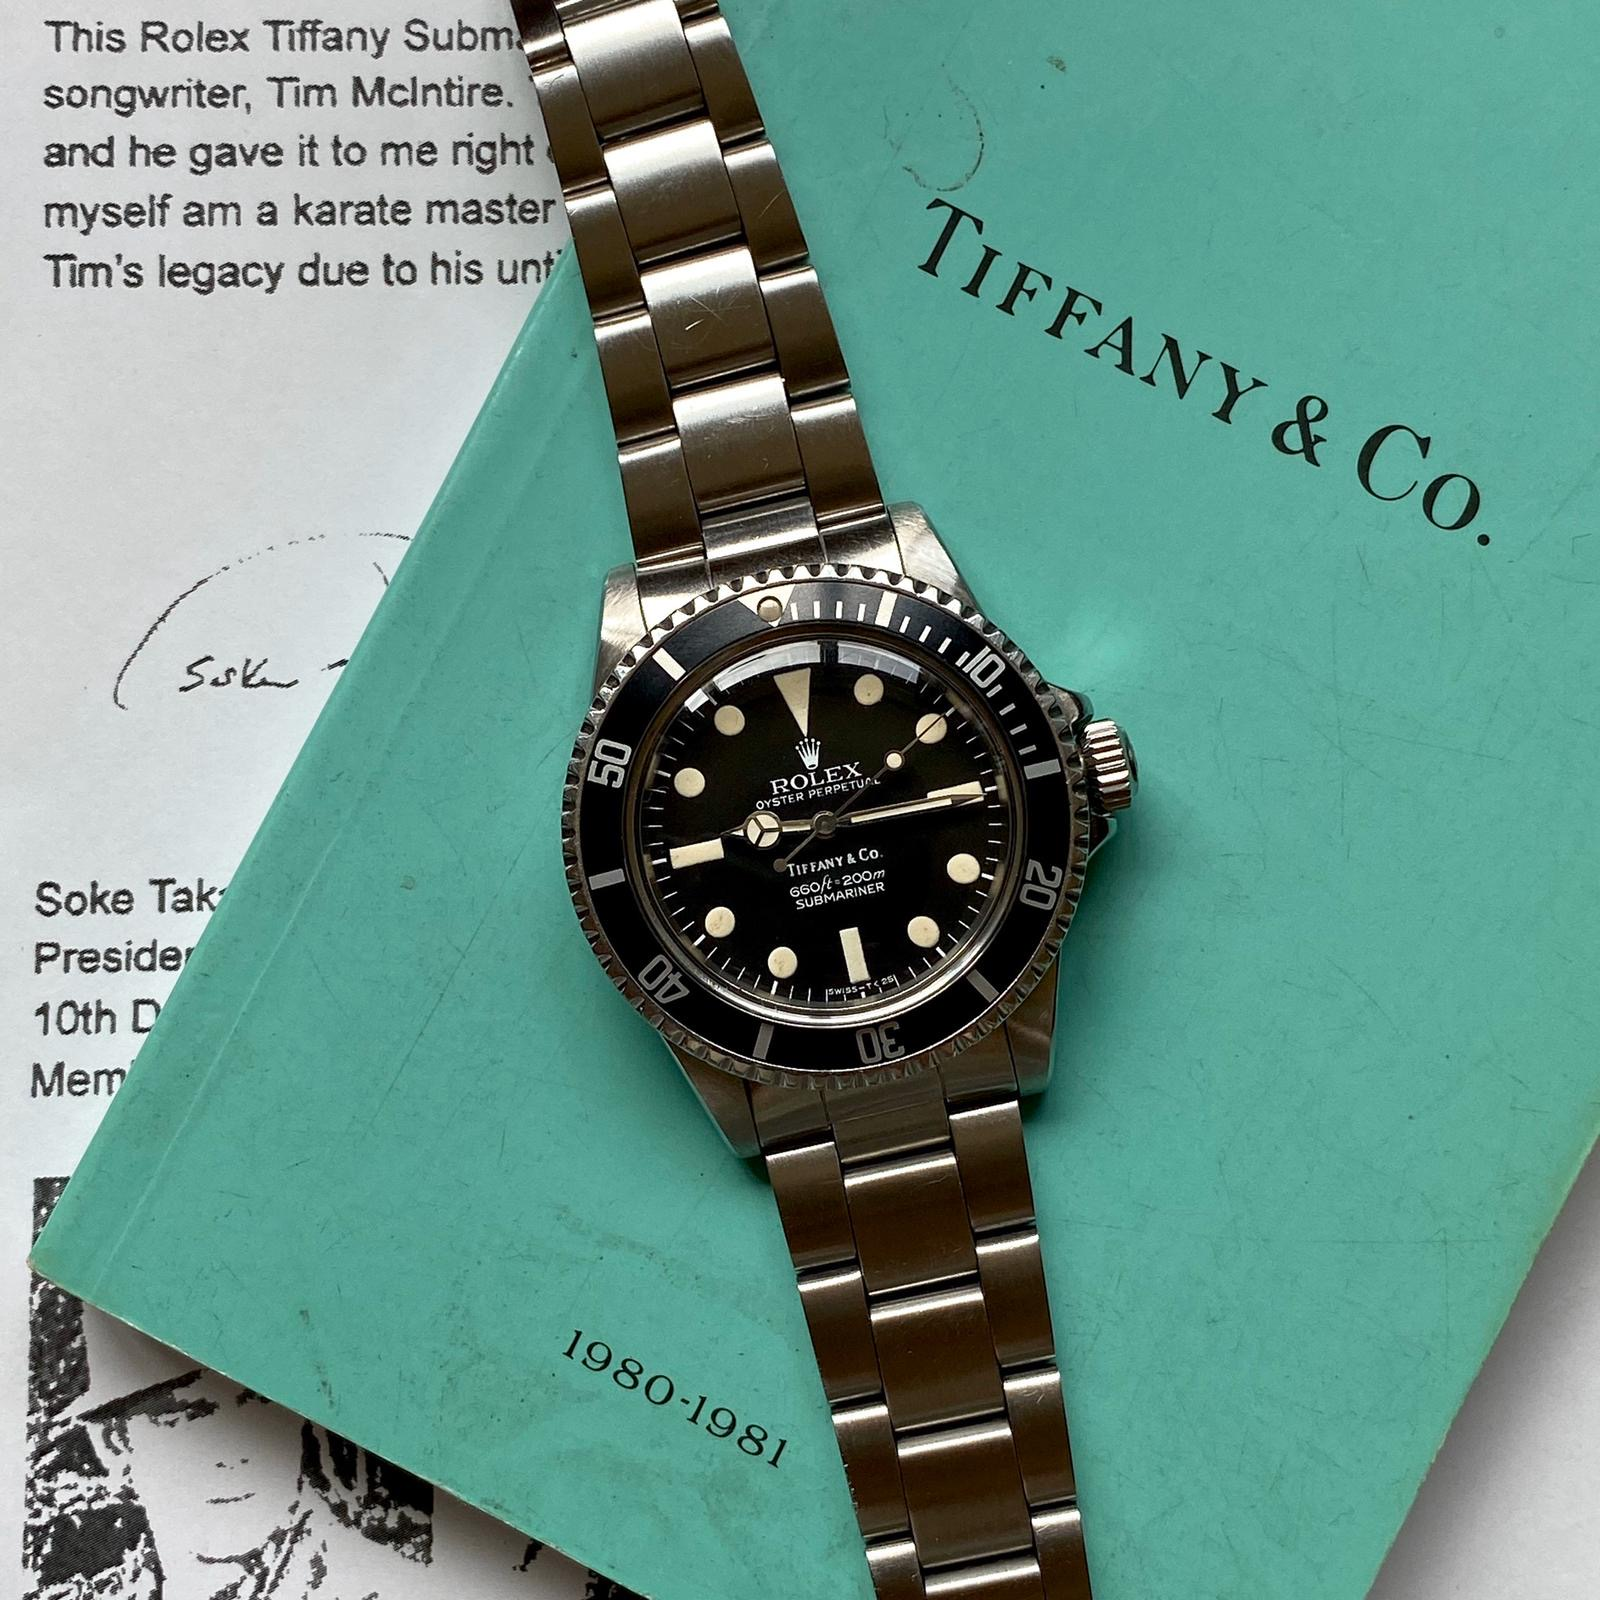 Rolex Ref 5513 Maxi MK1 retailed by Tiffany #Status : Sold